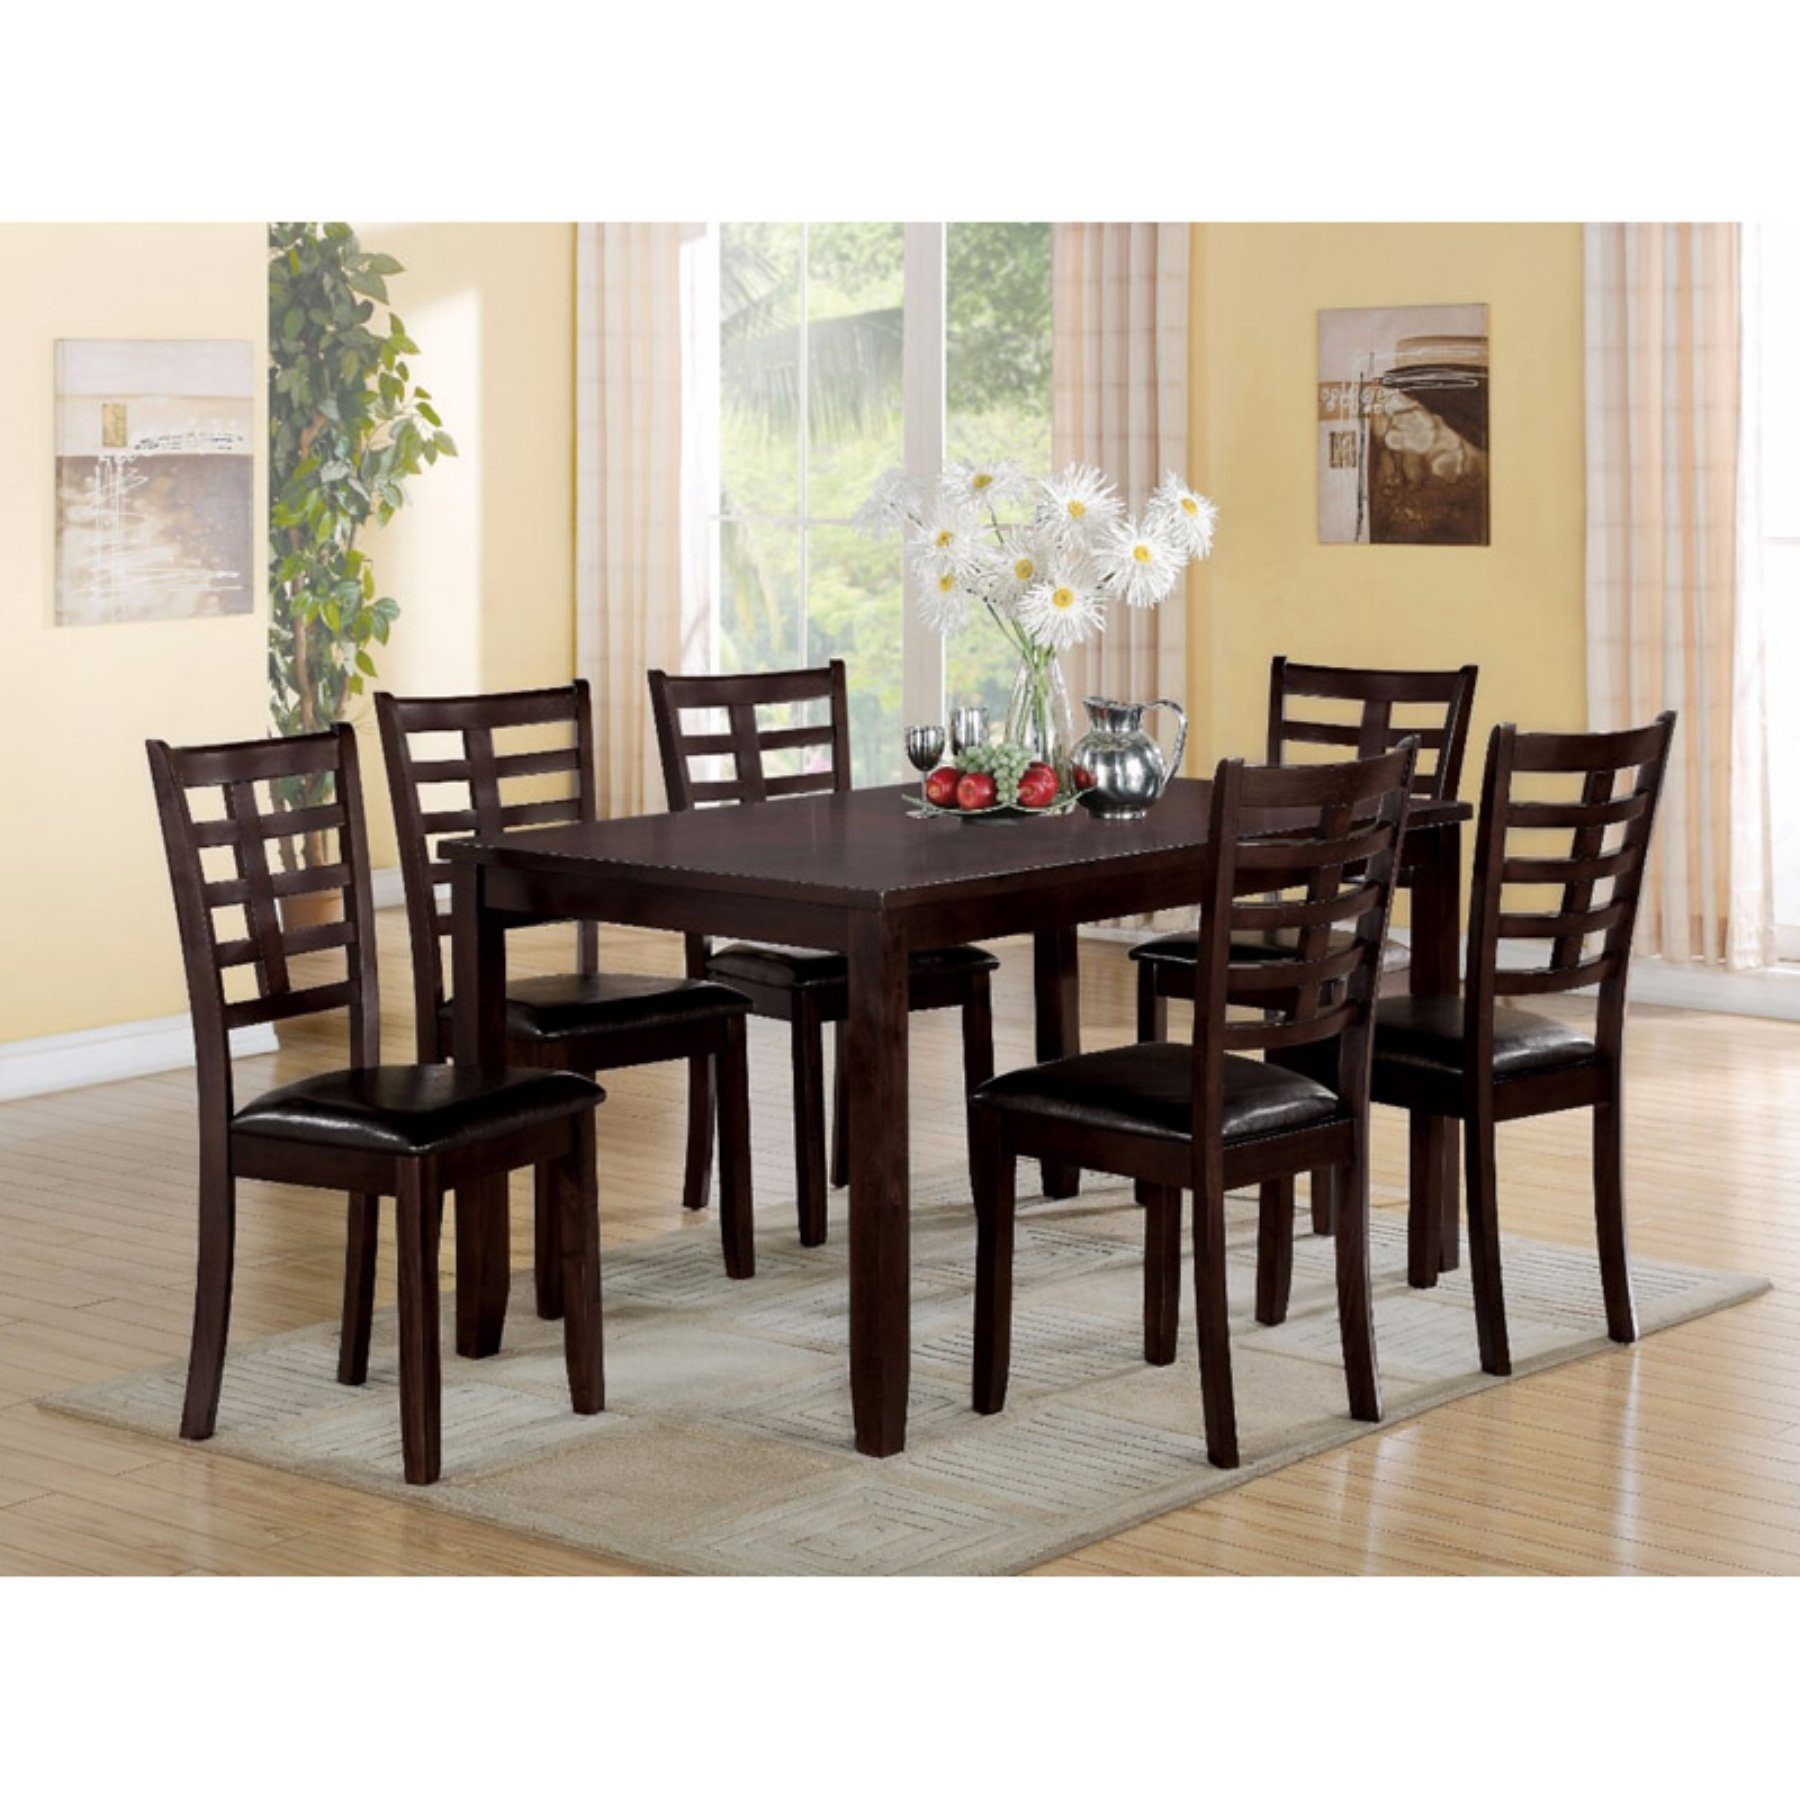 Benzara Wooden 7 Piece Rectangular Dining Table Set In 2018 Regarding Most Recently Released Market 7 Piece Dining Sets With Side Chairs (Image 2 of 20)